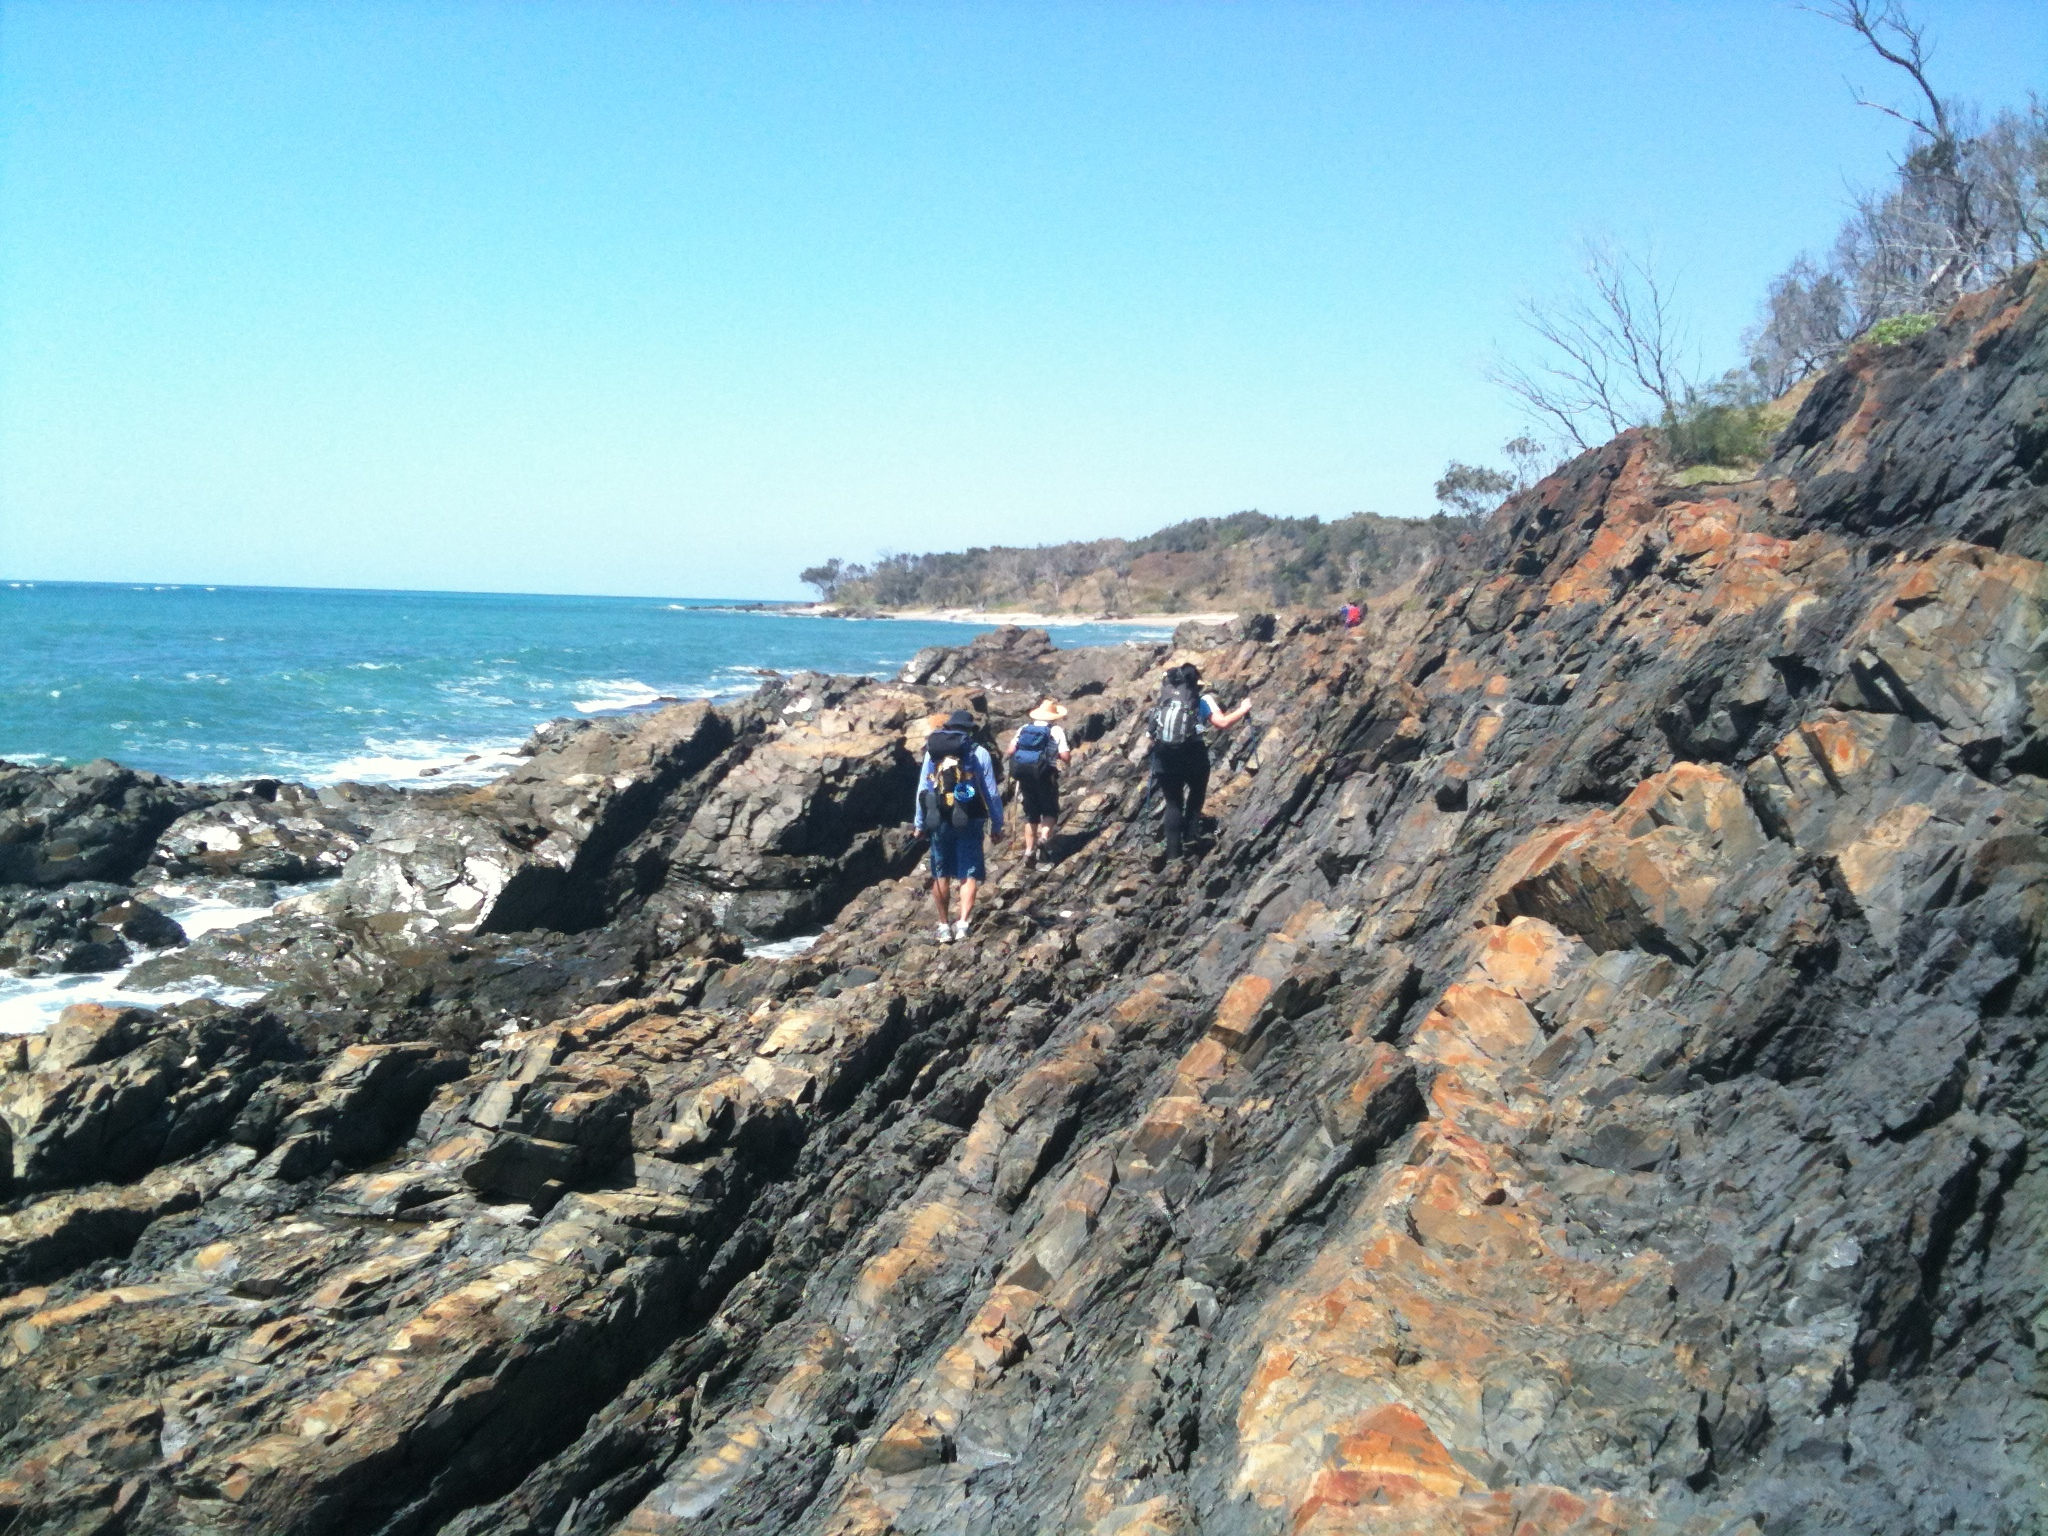 Rock hopping near Wooli. This is only done at low tide.